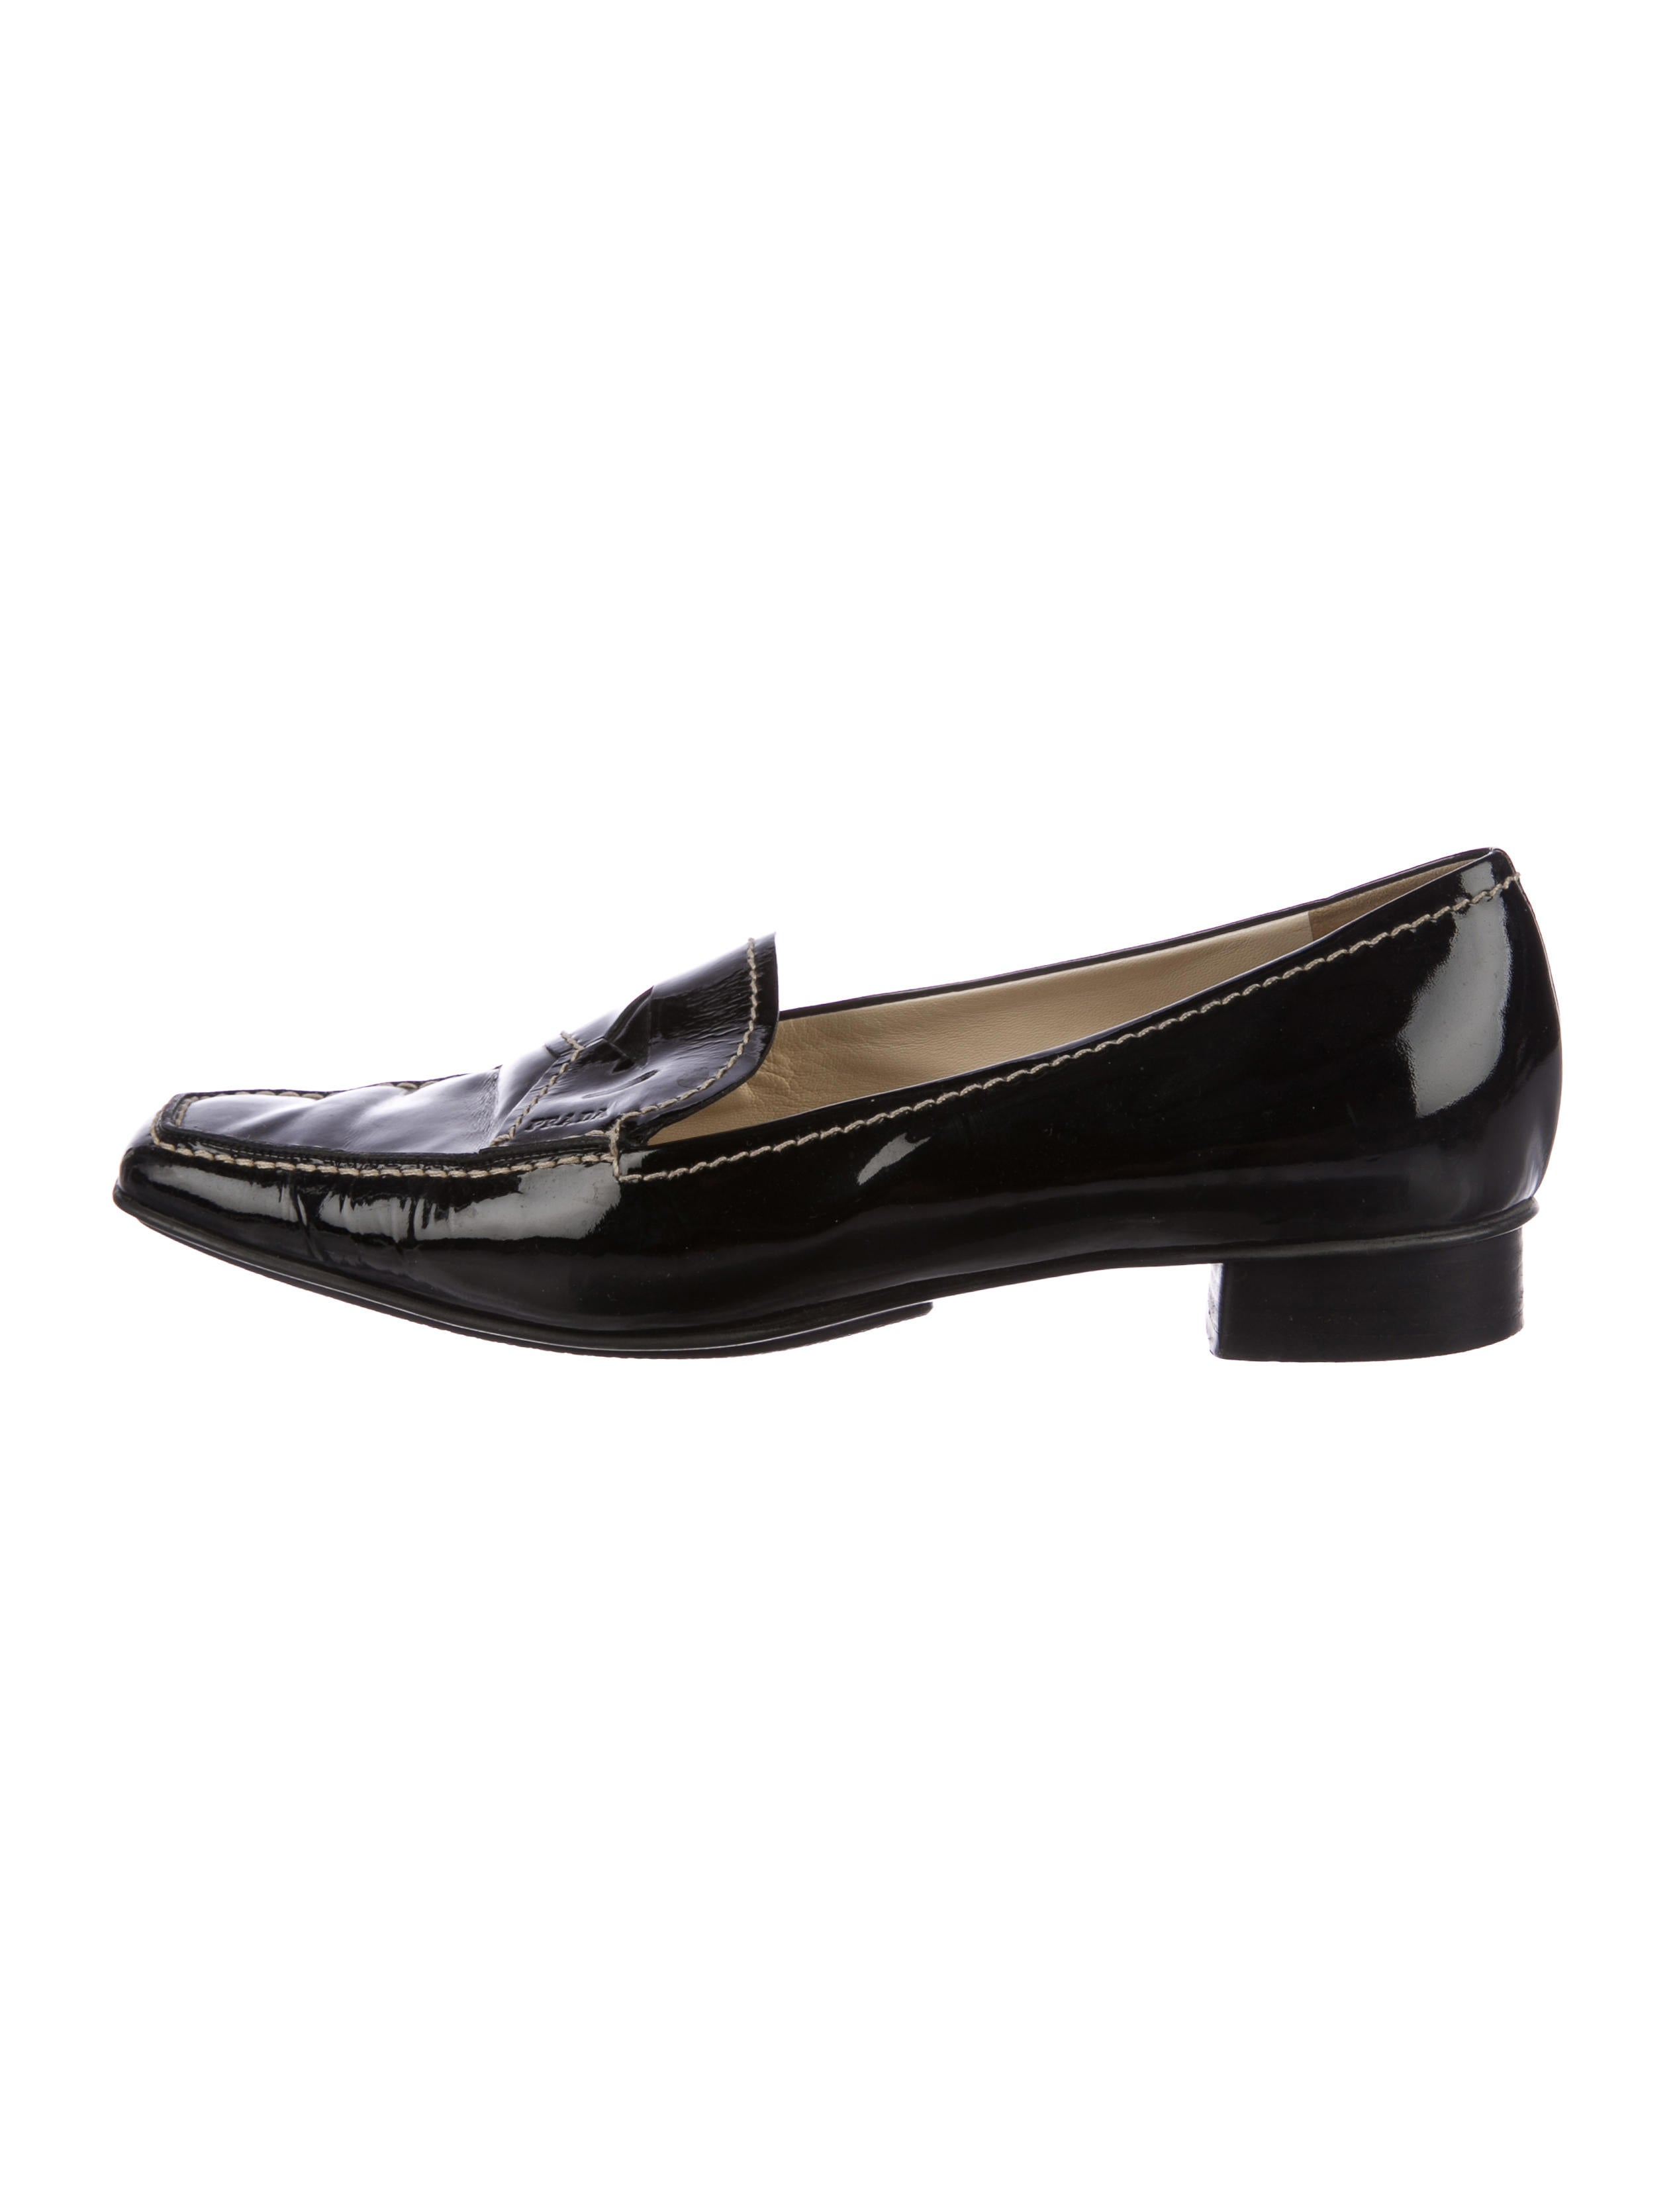 Prada Patent Square-Toe Loafers new styles sale online RBuE8gHuw